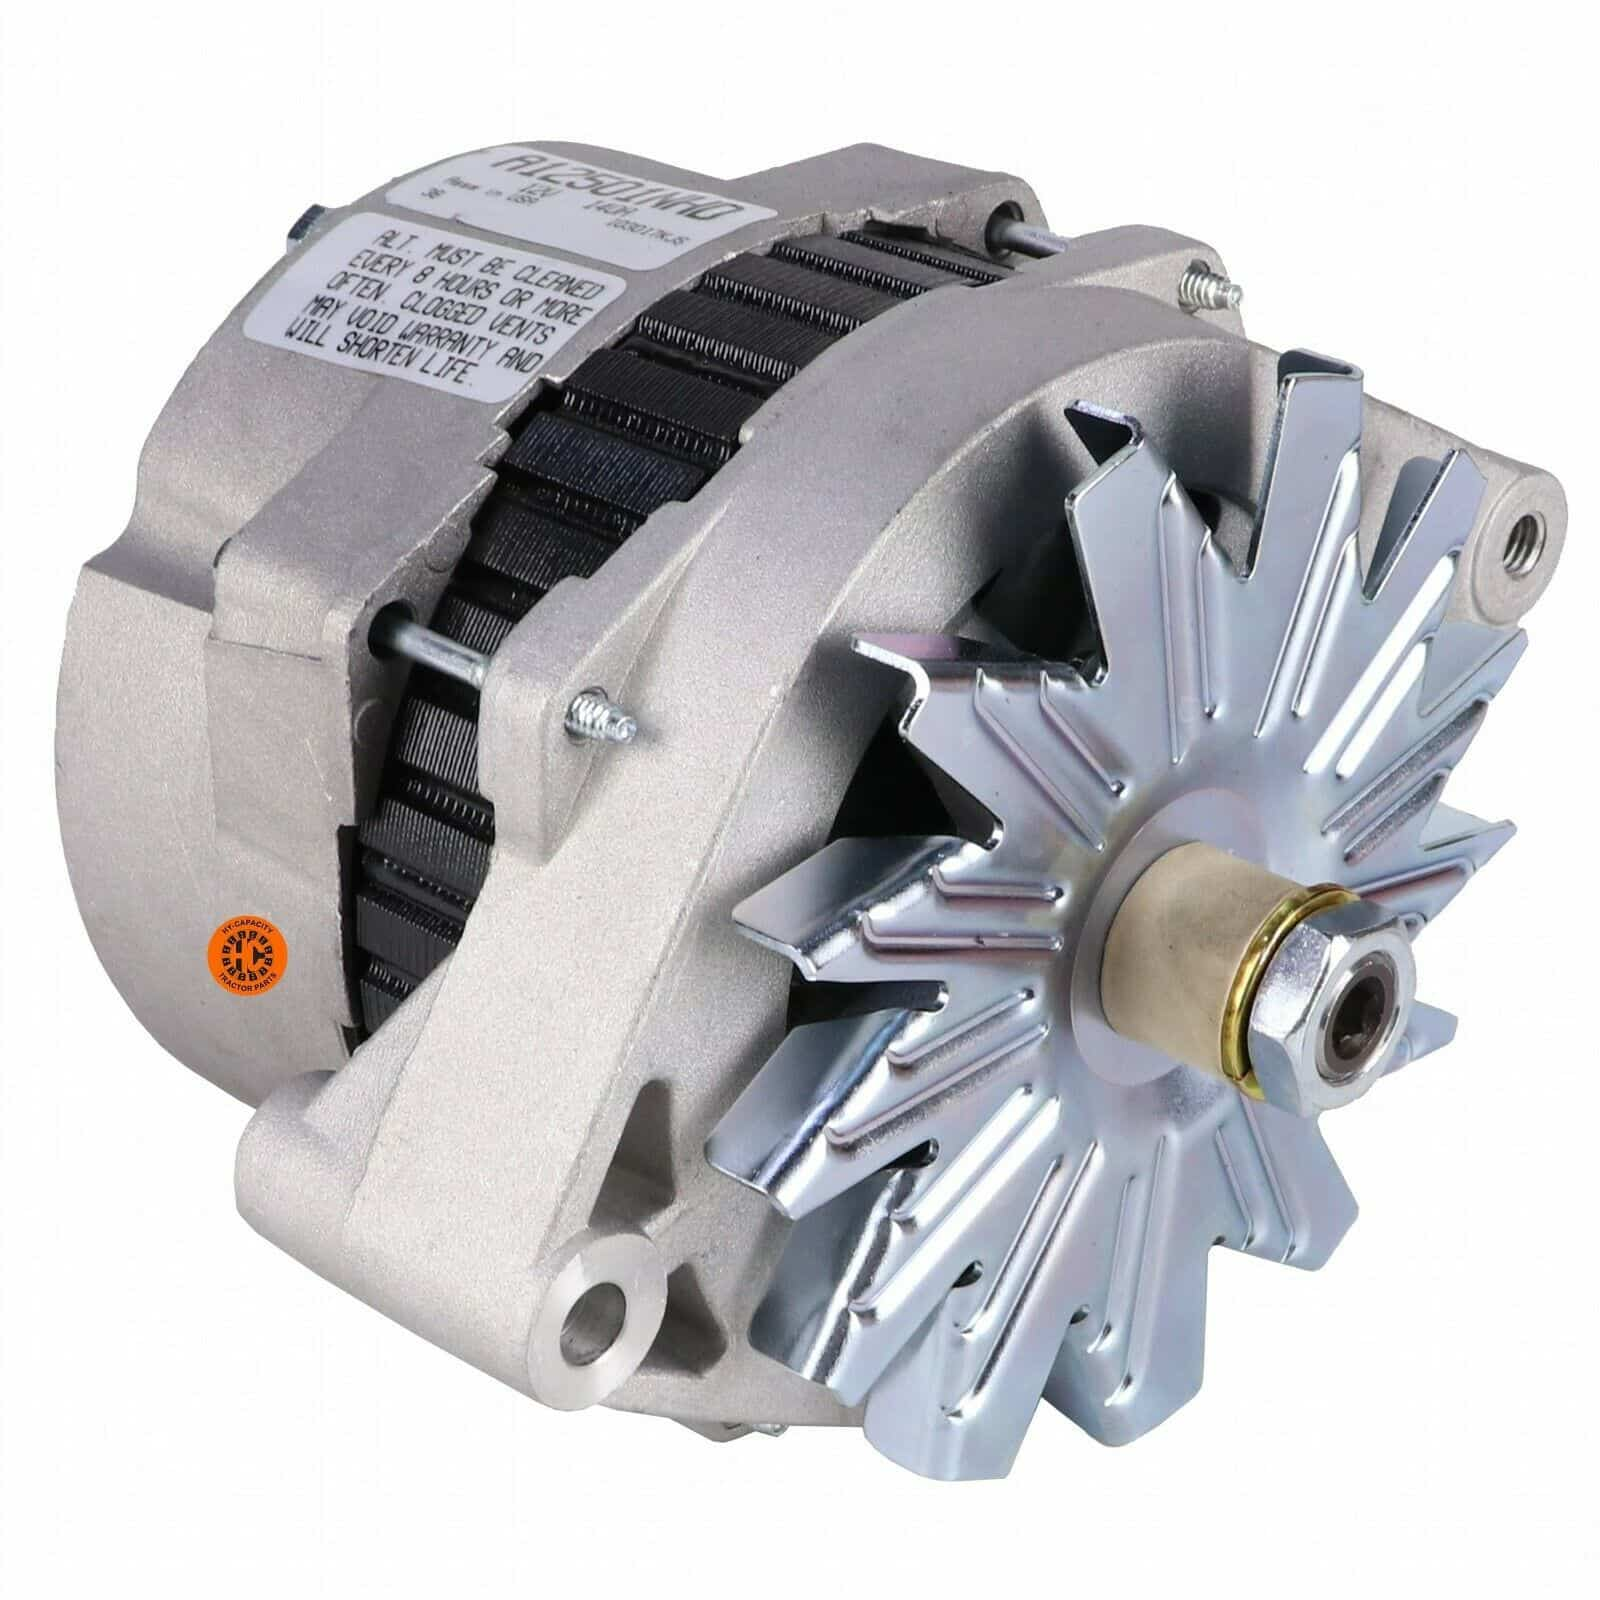 case-tractor-alternator-new-v-a-si-aftermarket-delco-remy